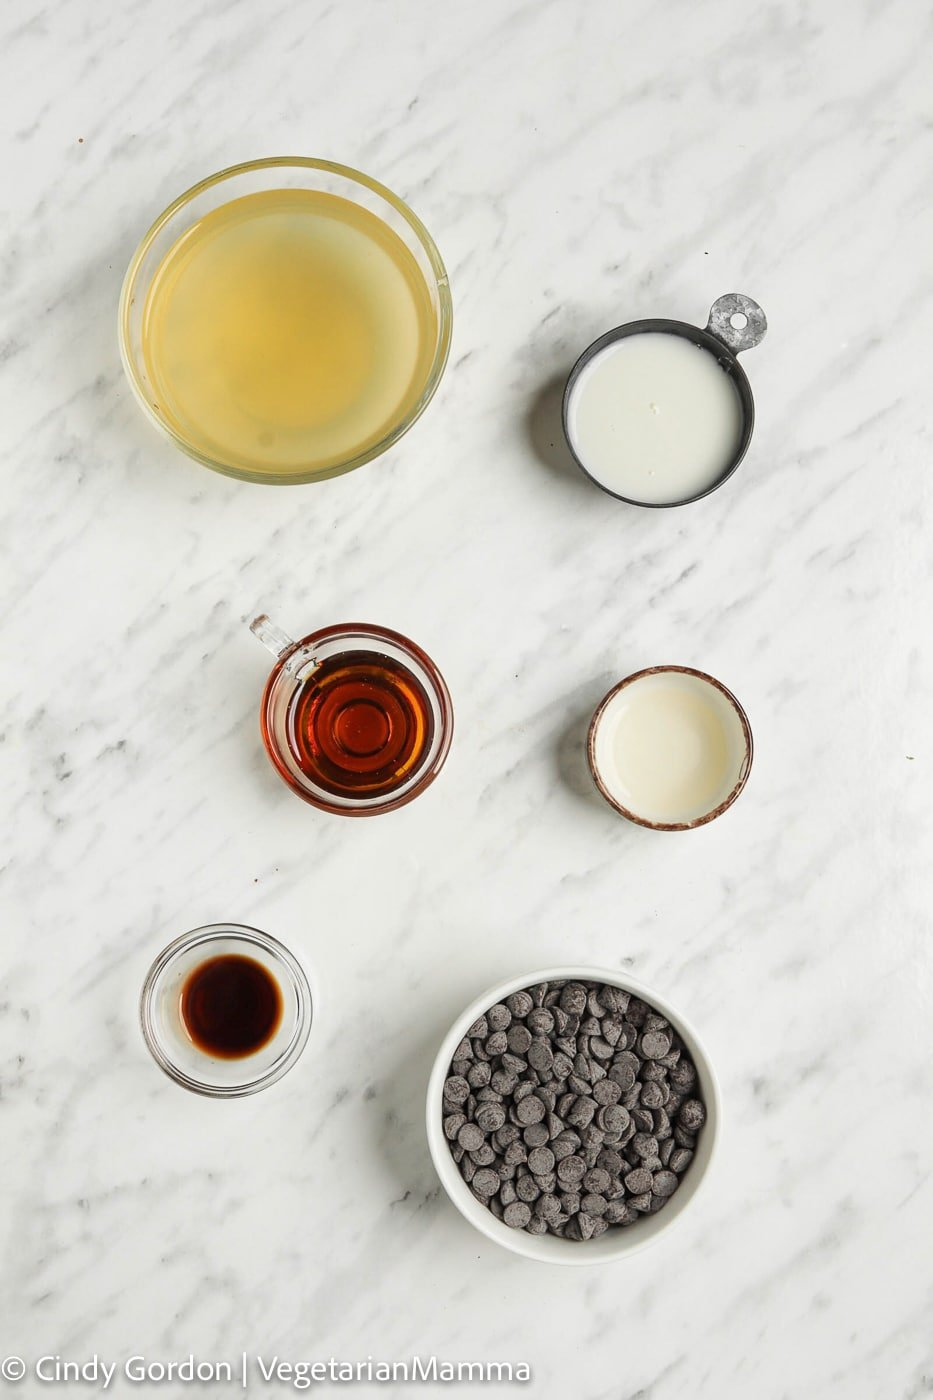 Ingredients for Aquafaba Mousse in separate bowls on a marble countertop